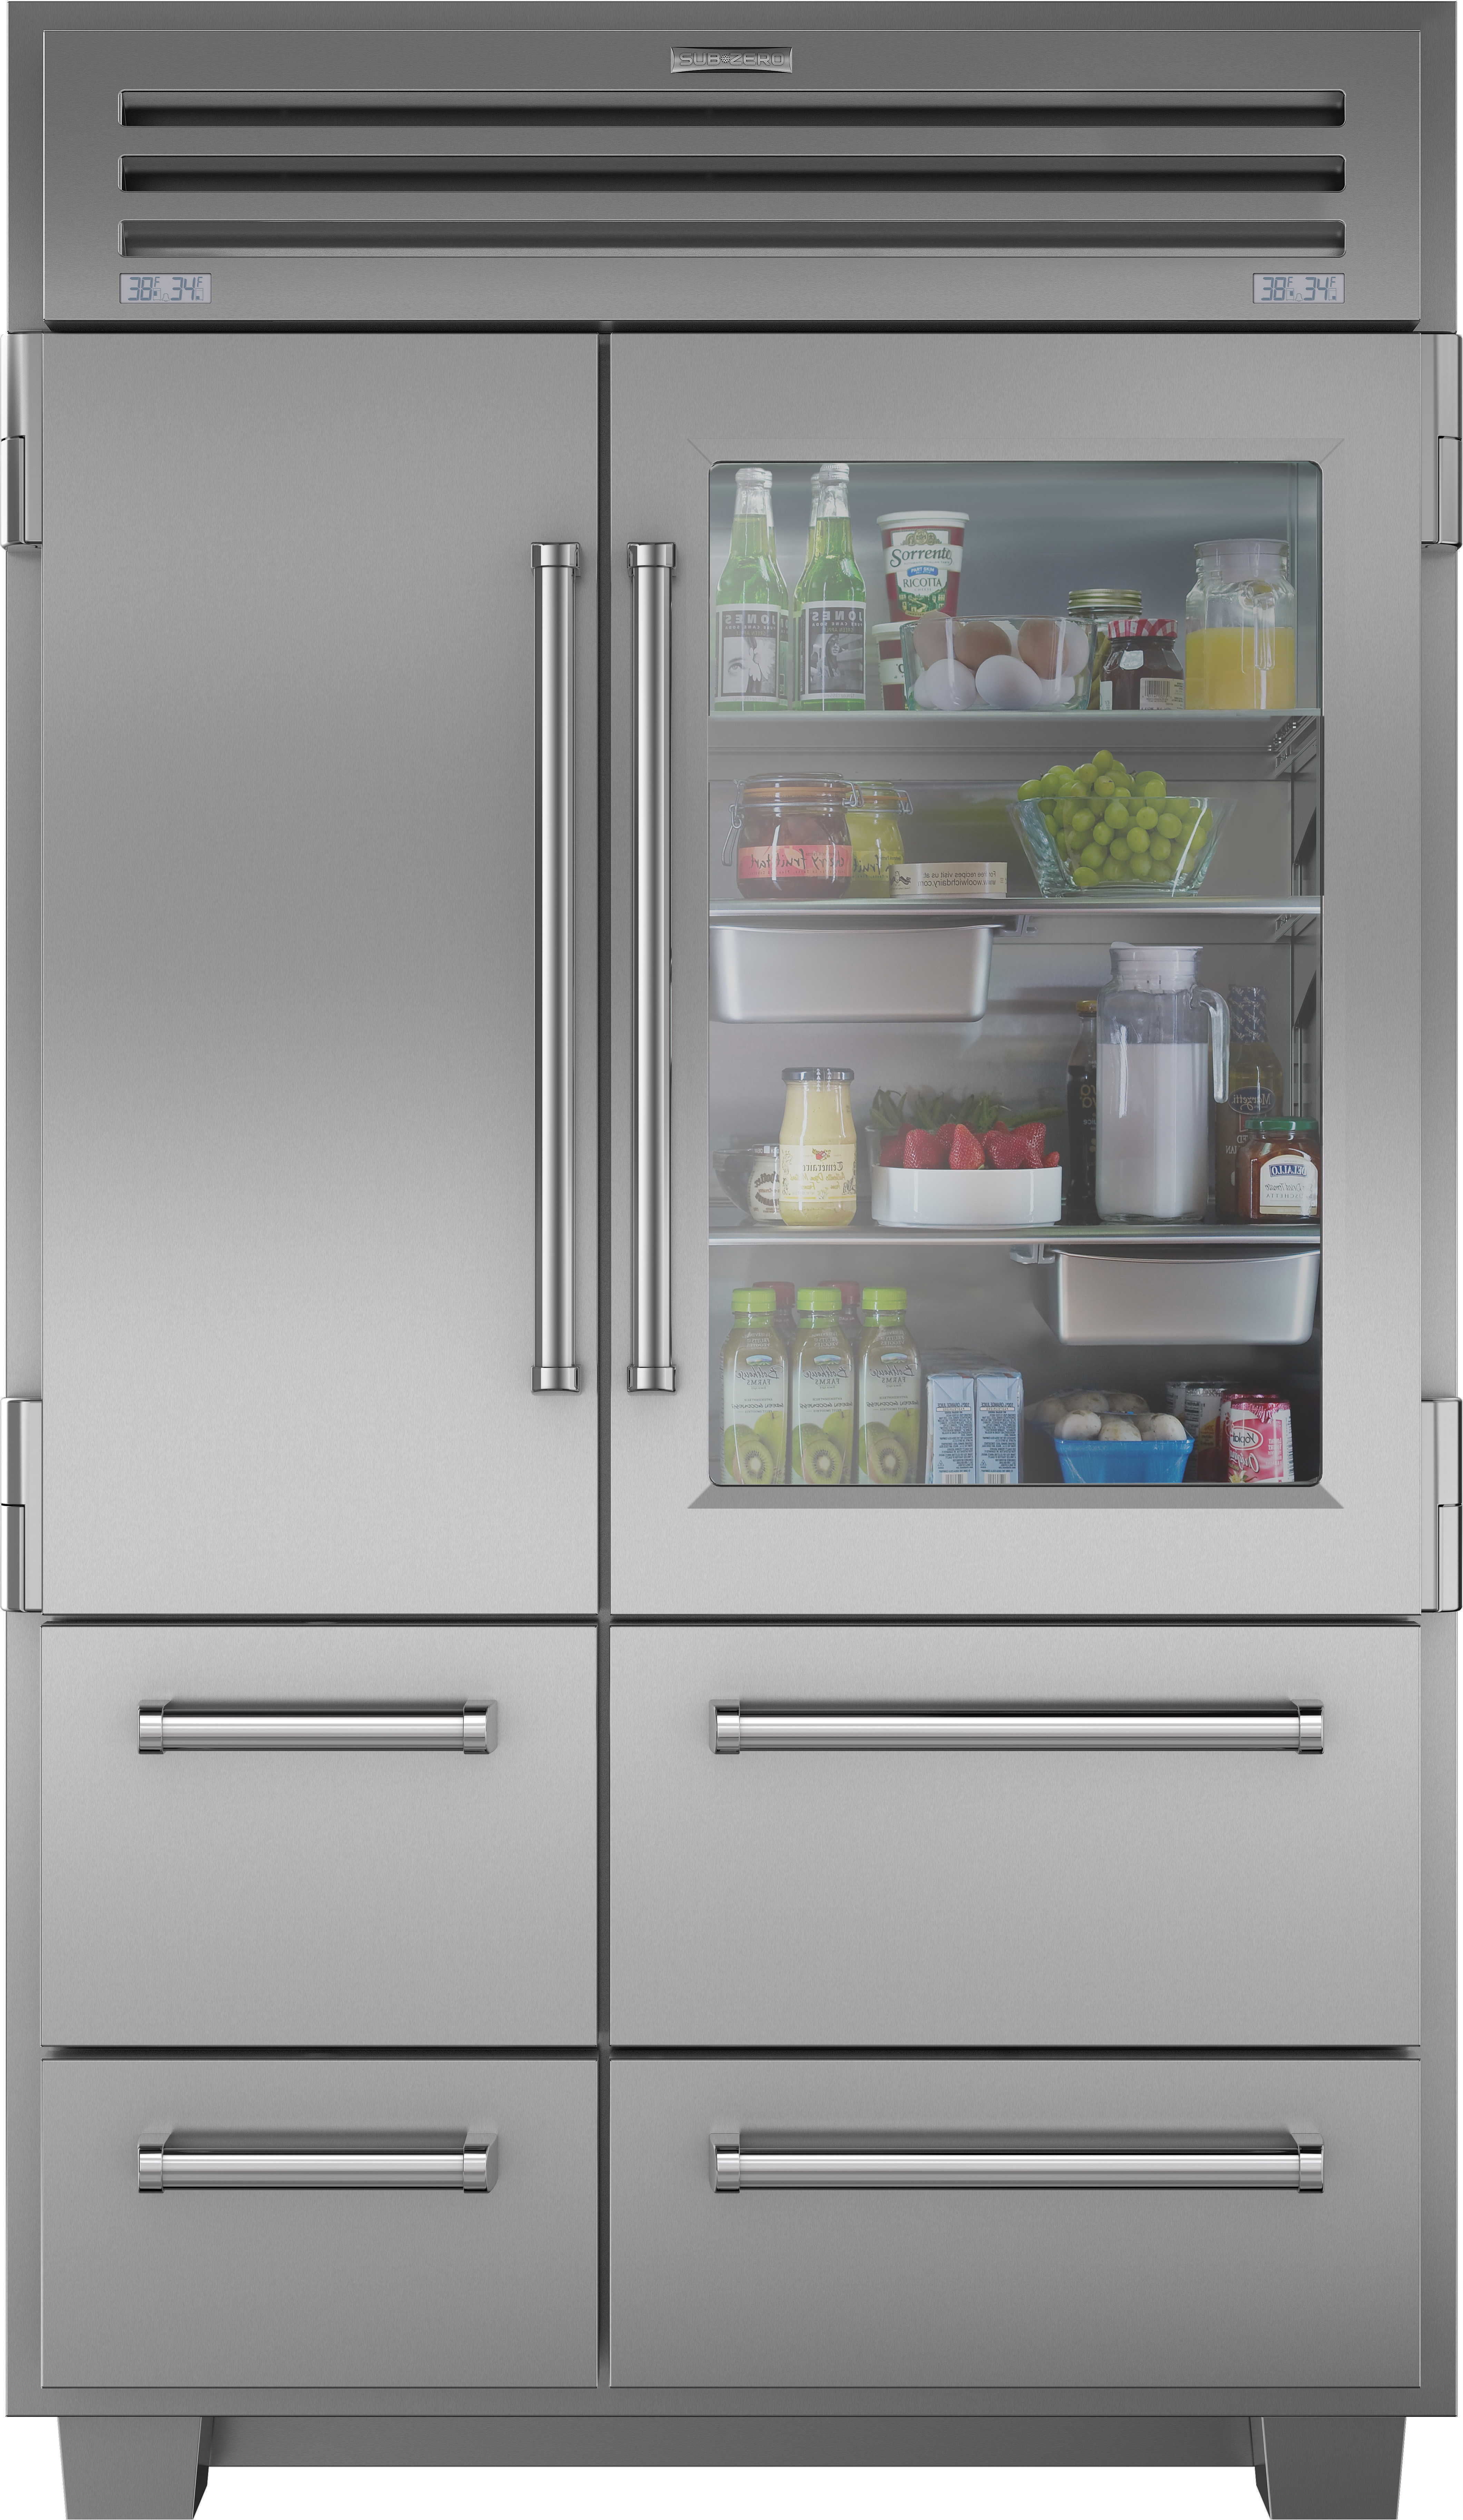 by side of style reviews page bobmcmullen full elegant ines awesome drawer refrigerator info kitchenaid drawers superba size